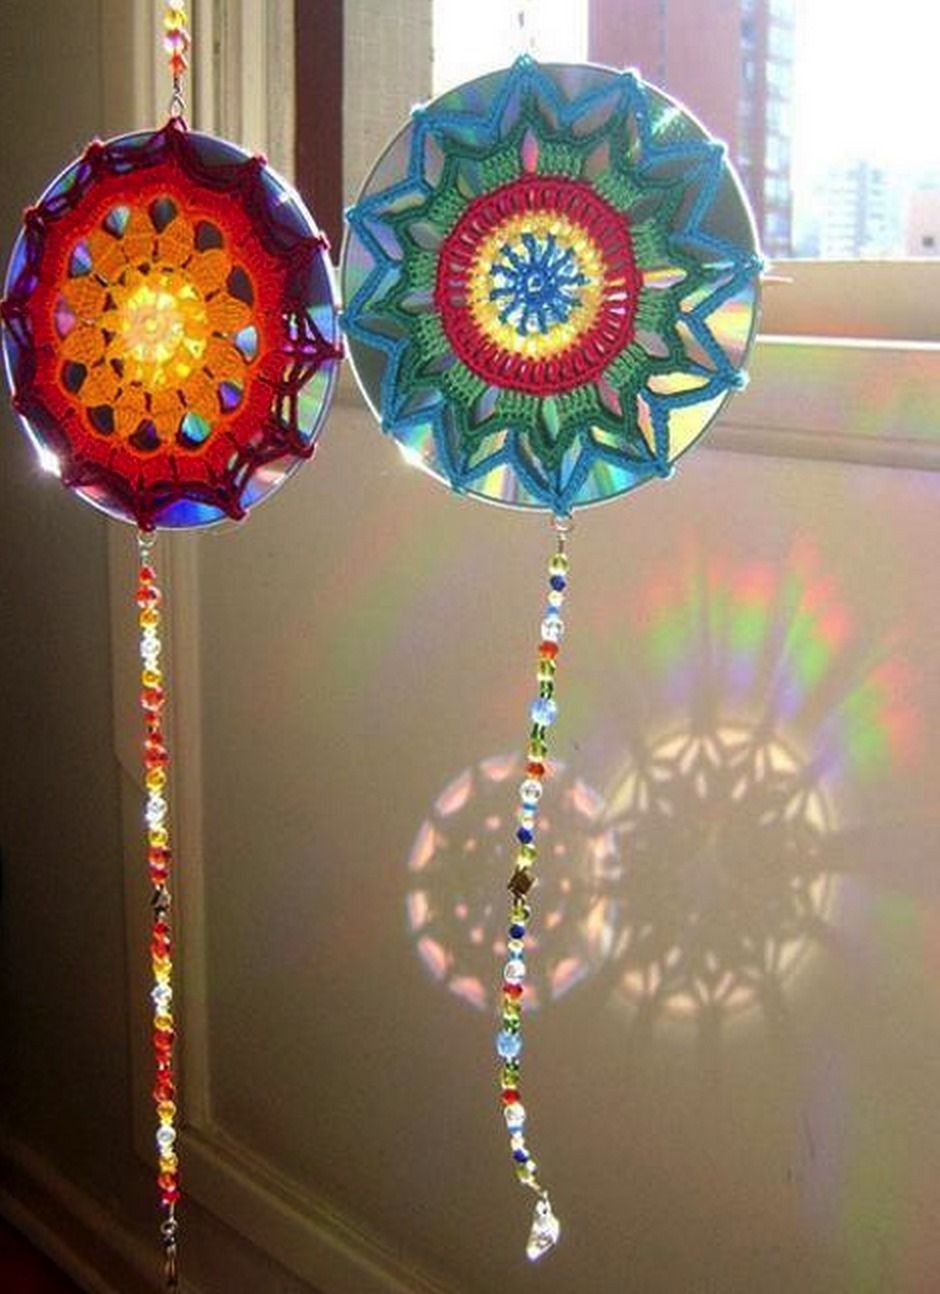 Pin By Anne Vaillancourt On Crafts Pinterest Crochet Crafts And